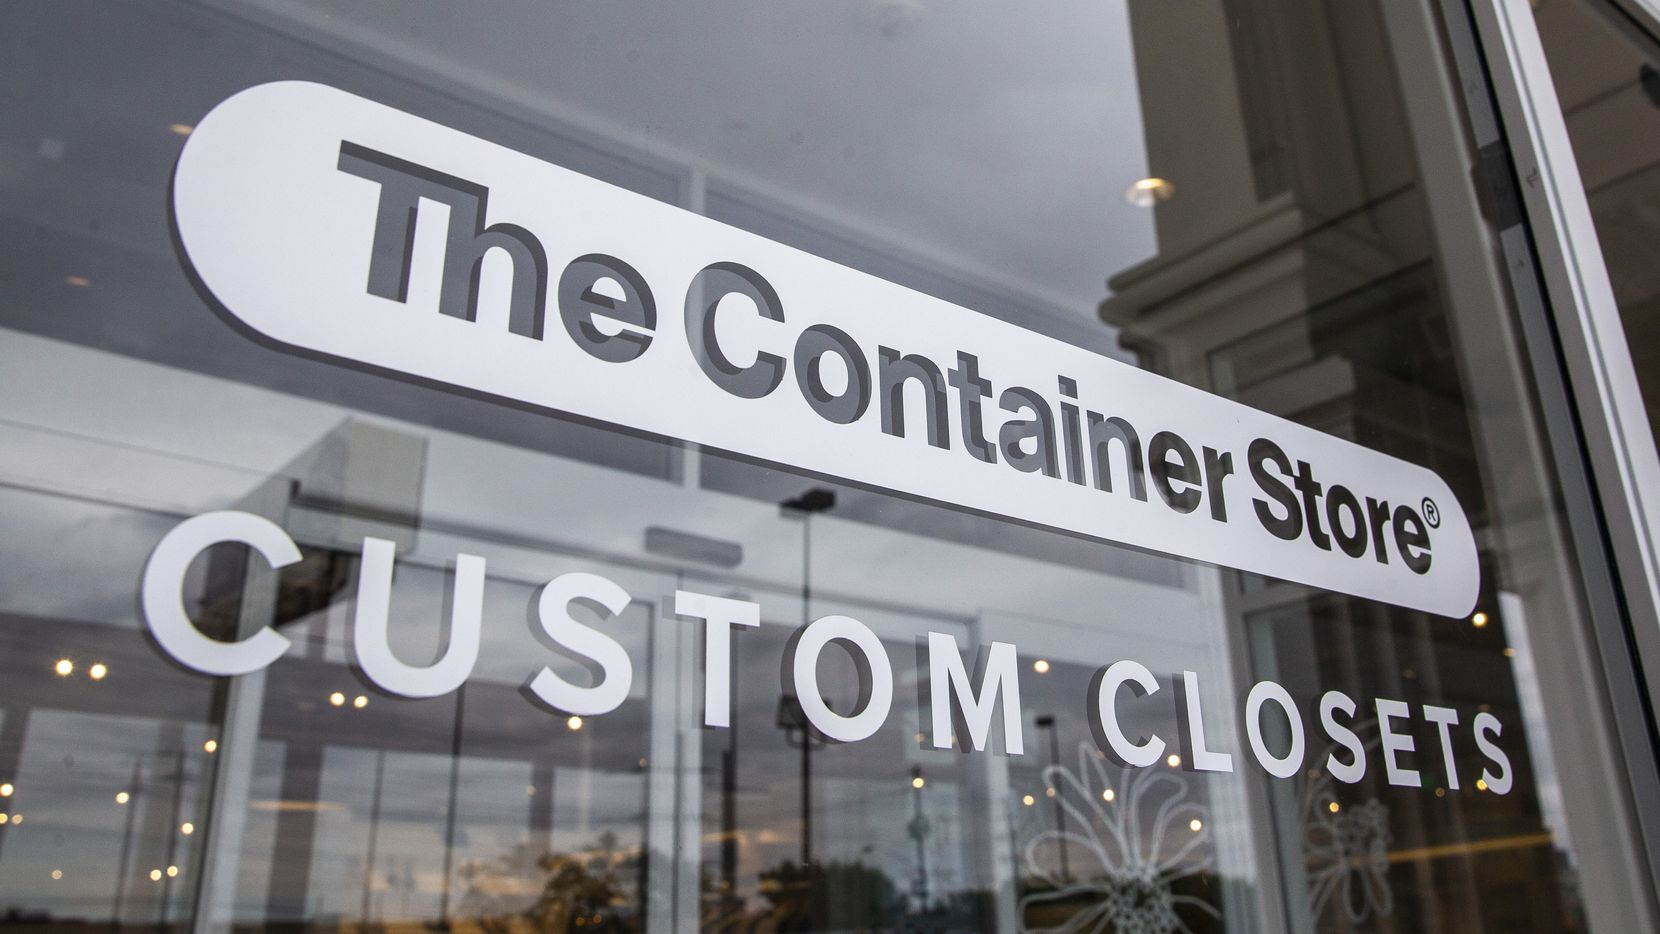 The Container Store opened last year in new space north of Galleria Dallas along the Dallas North Tollway with an expanded custom closets showroom. There's one other store like it in Los Angeles.